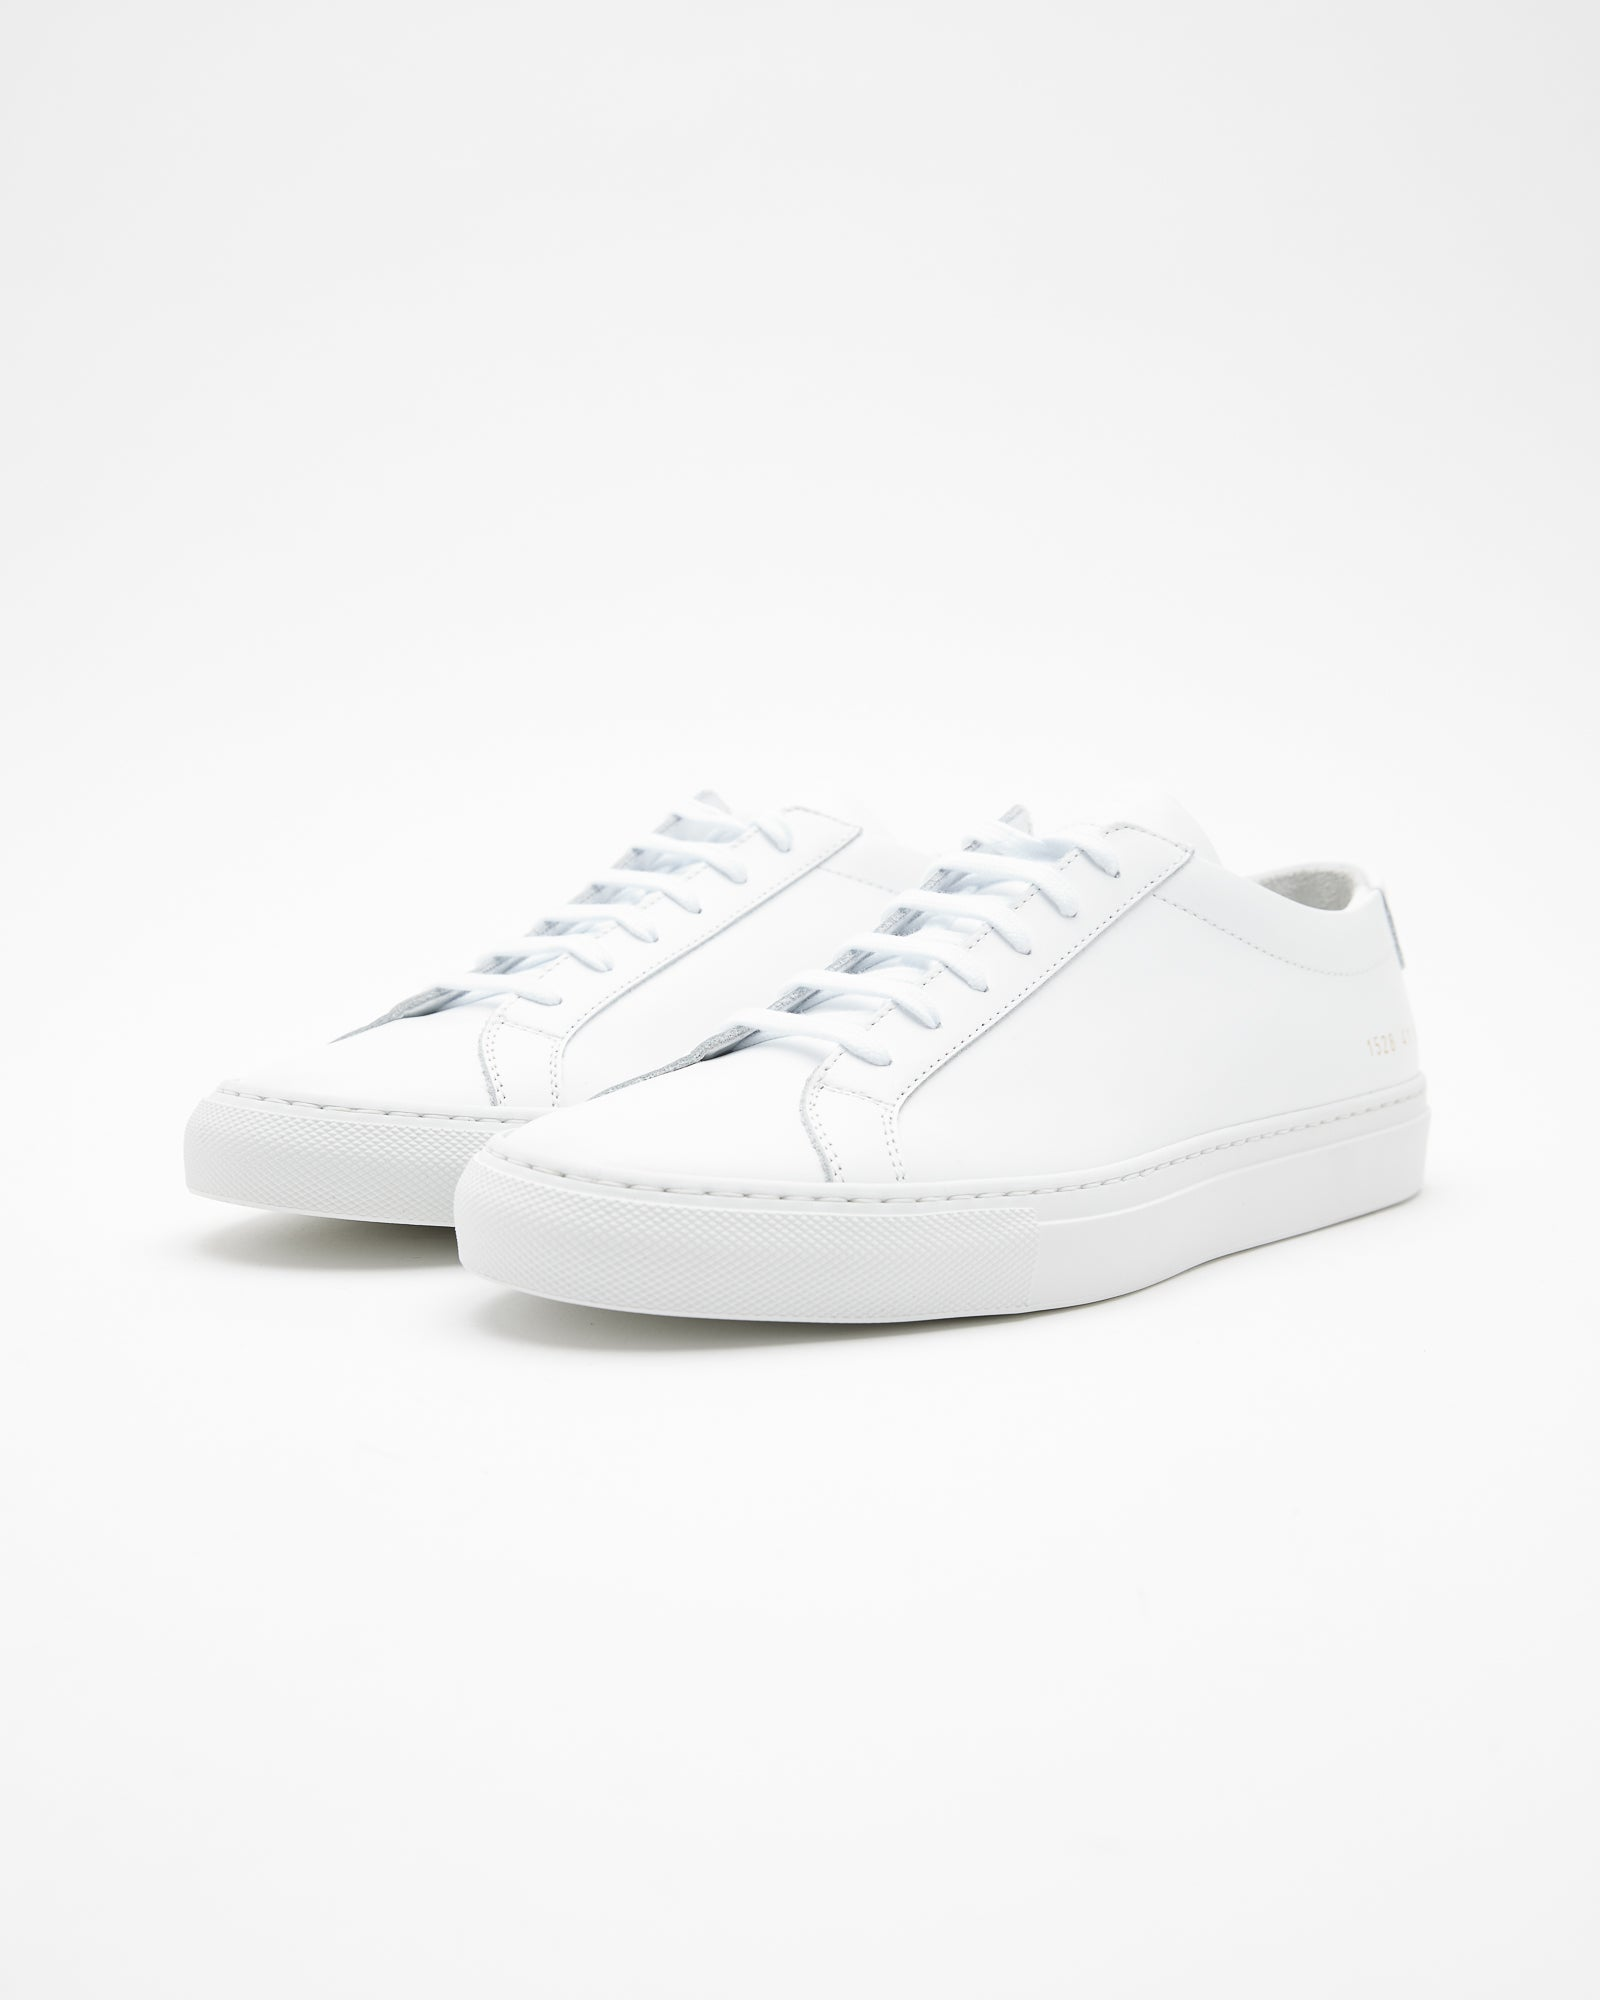 Original Achilles Low Sneakers in White